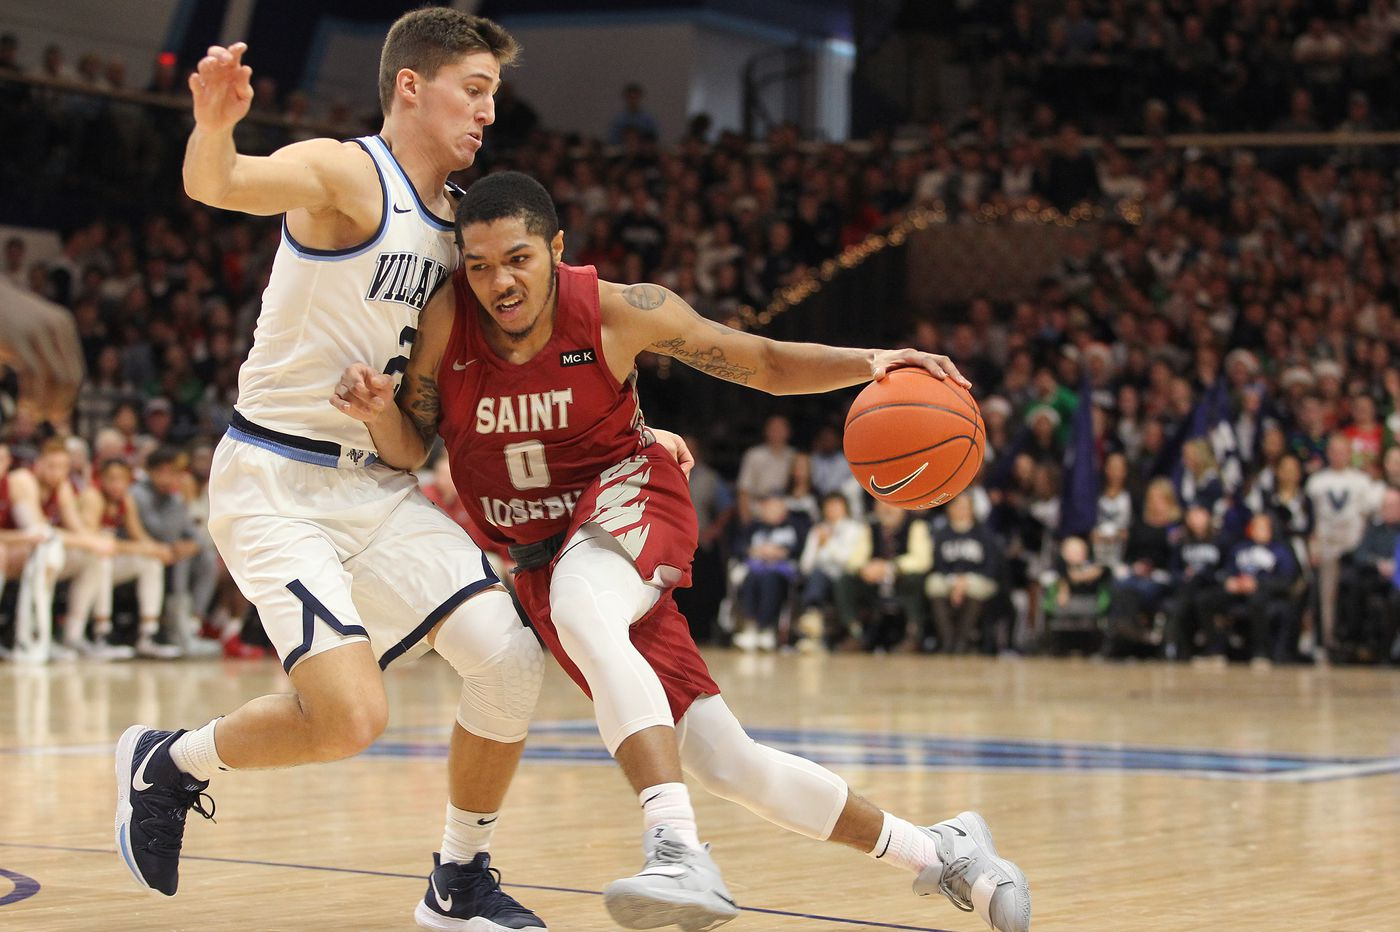 As league play nears, Atlantic 10 did not take care of business in non-conference schedule